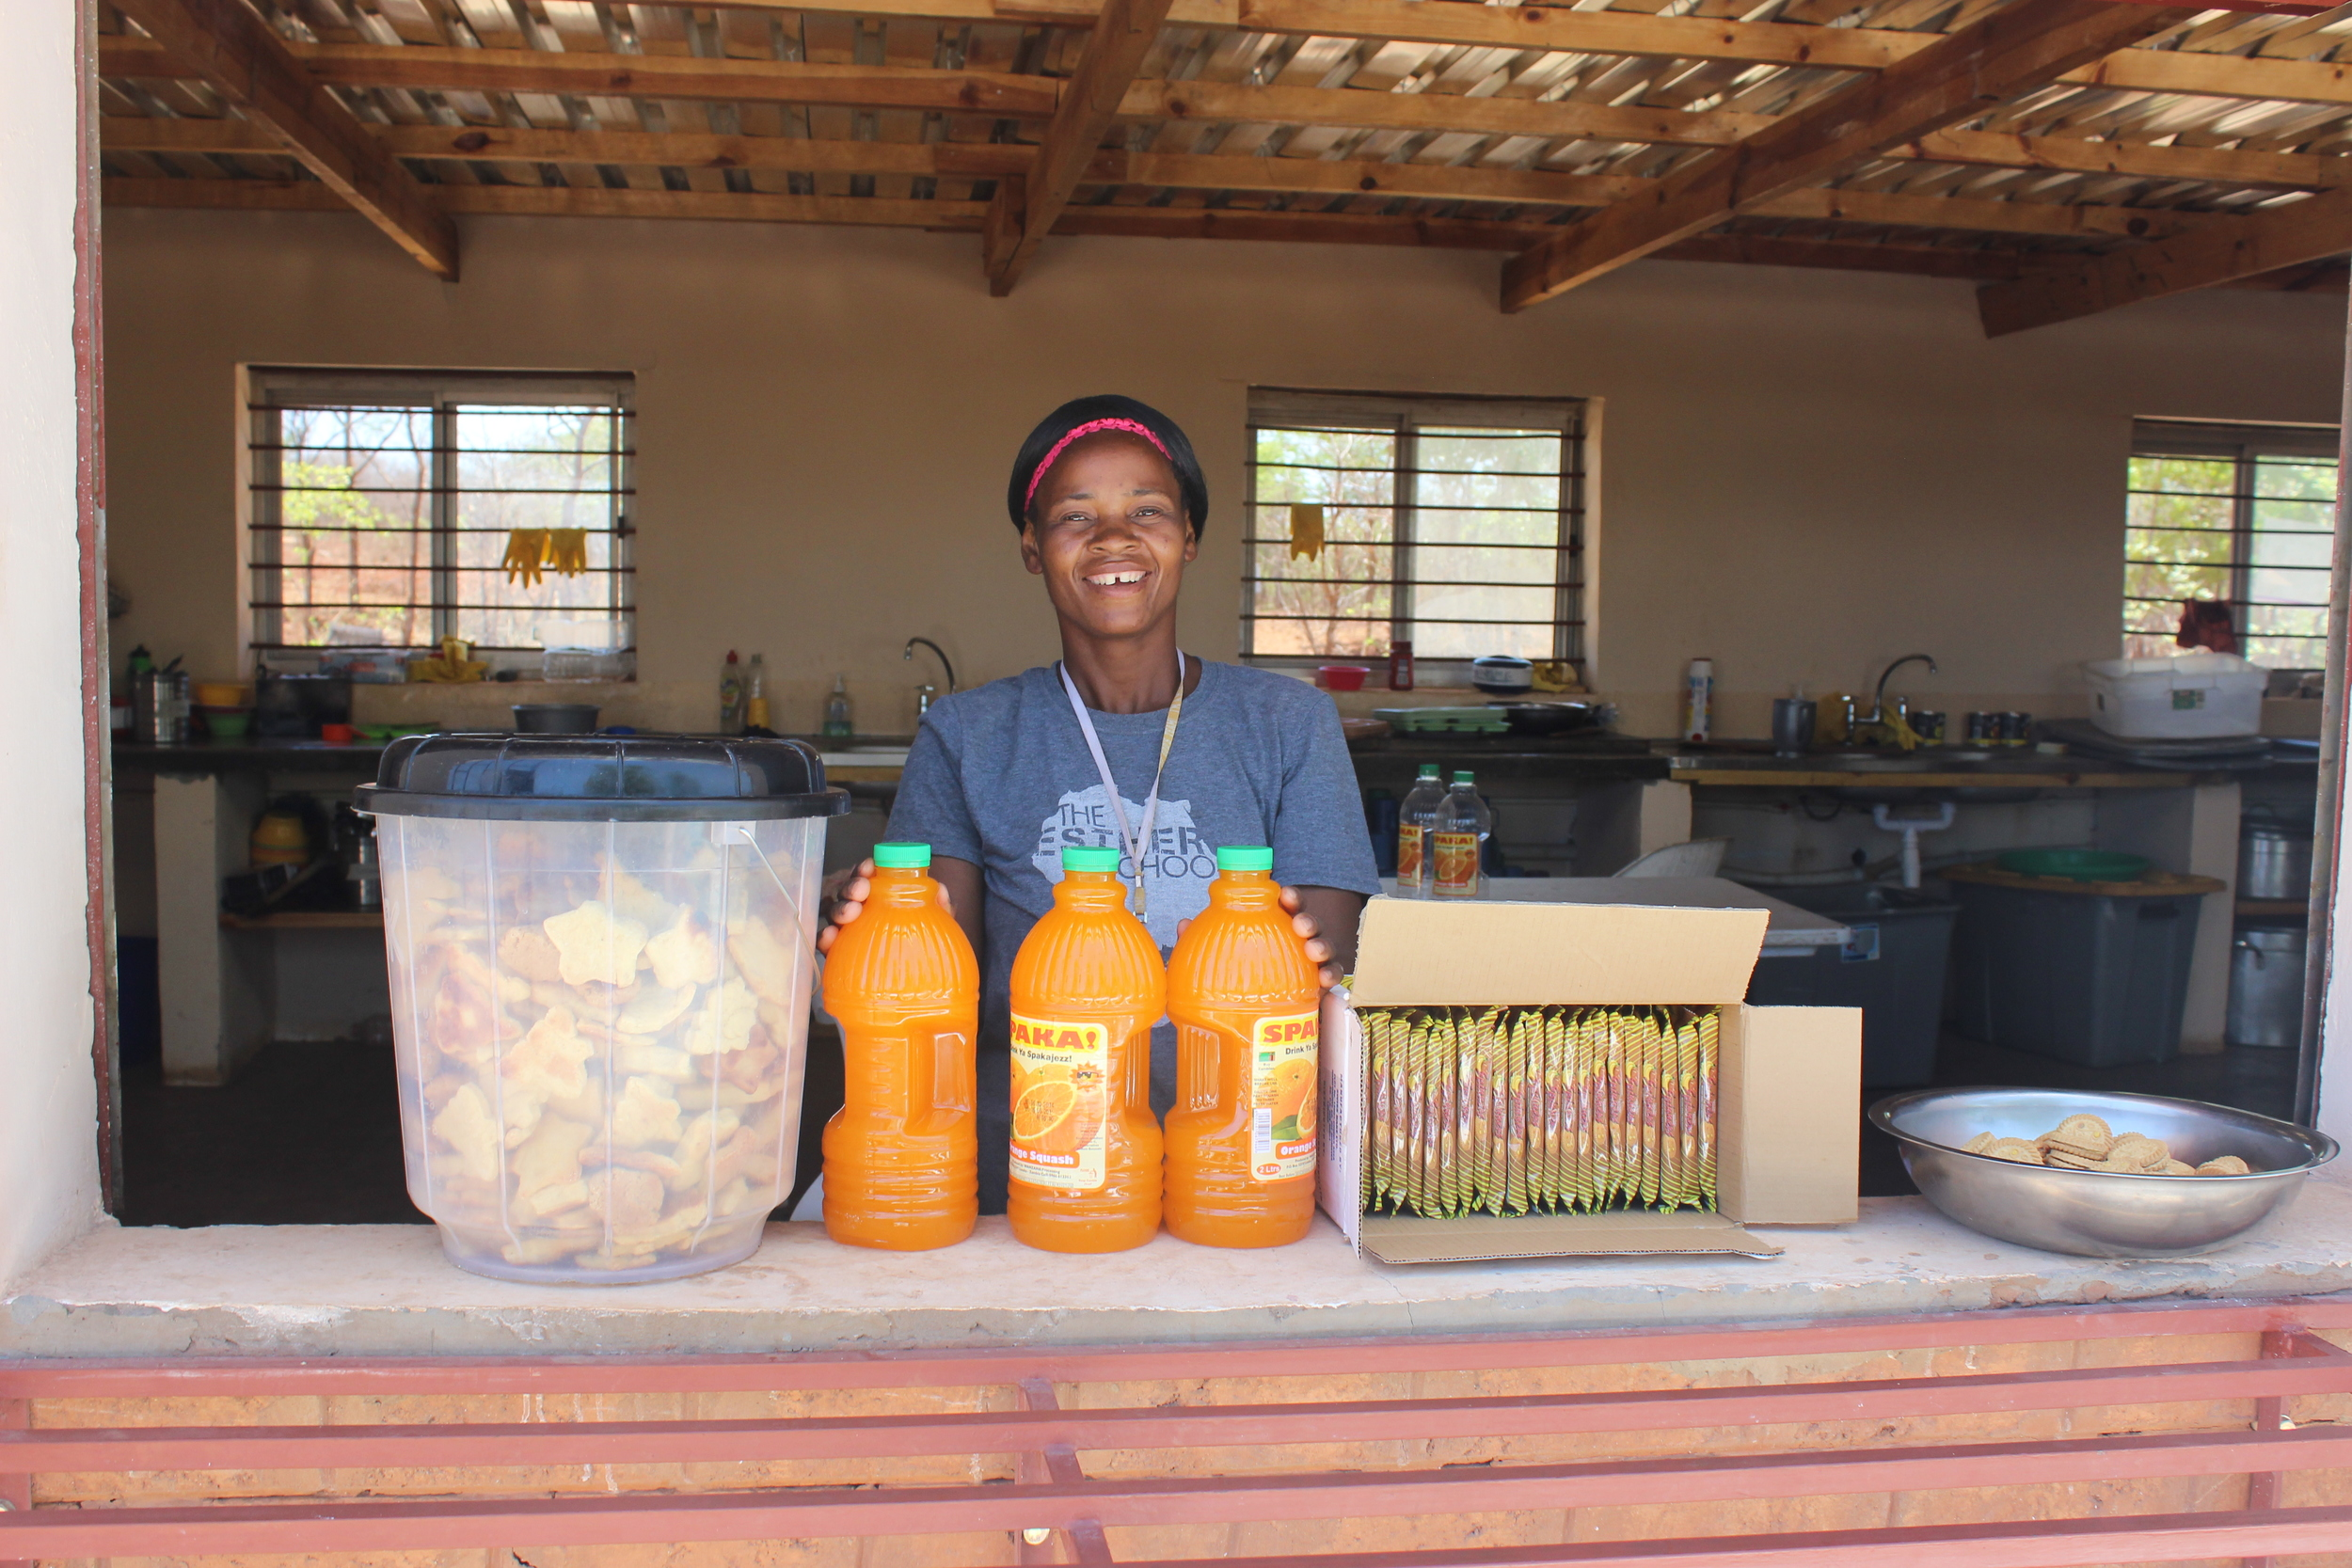 Mama Charity, the head of the kitchen, preparing snack for Family Day